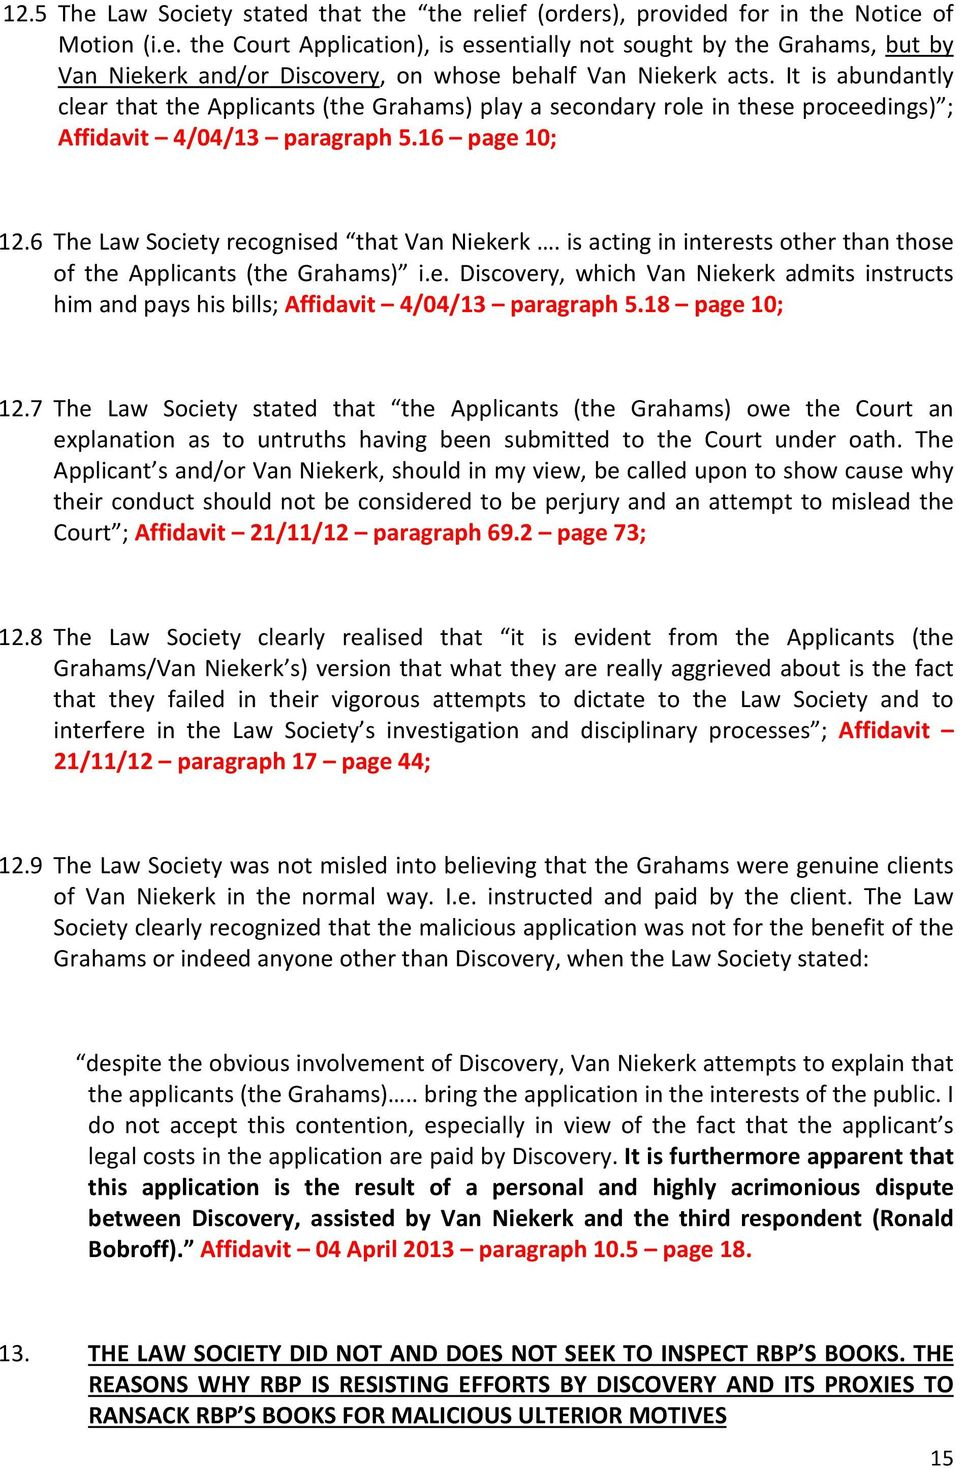 is acting in interests other than those of the Applicants (the Grahams) i.e. Discovery, which Van Niekerk admits instructs him and pays his bills; Affidavit 4/04/13 paragraph 5.18 page 10; 12.